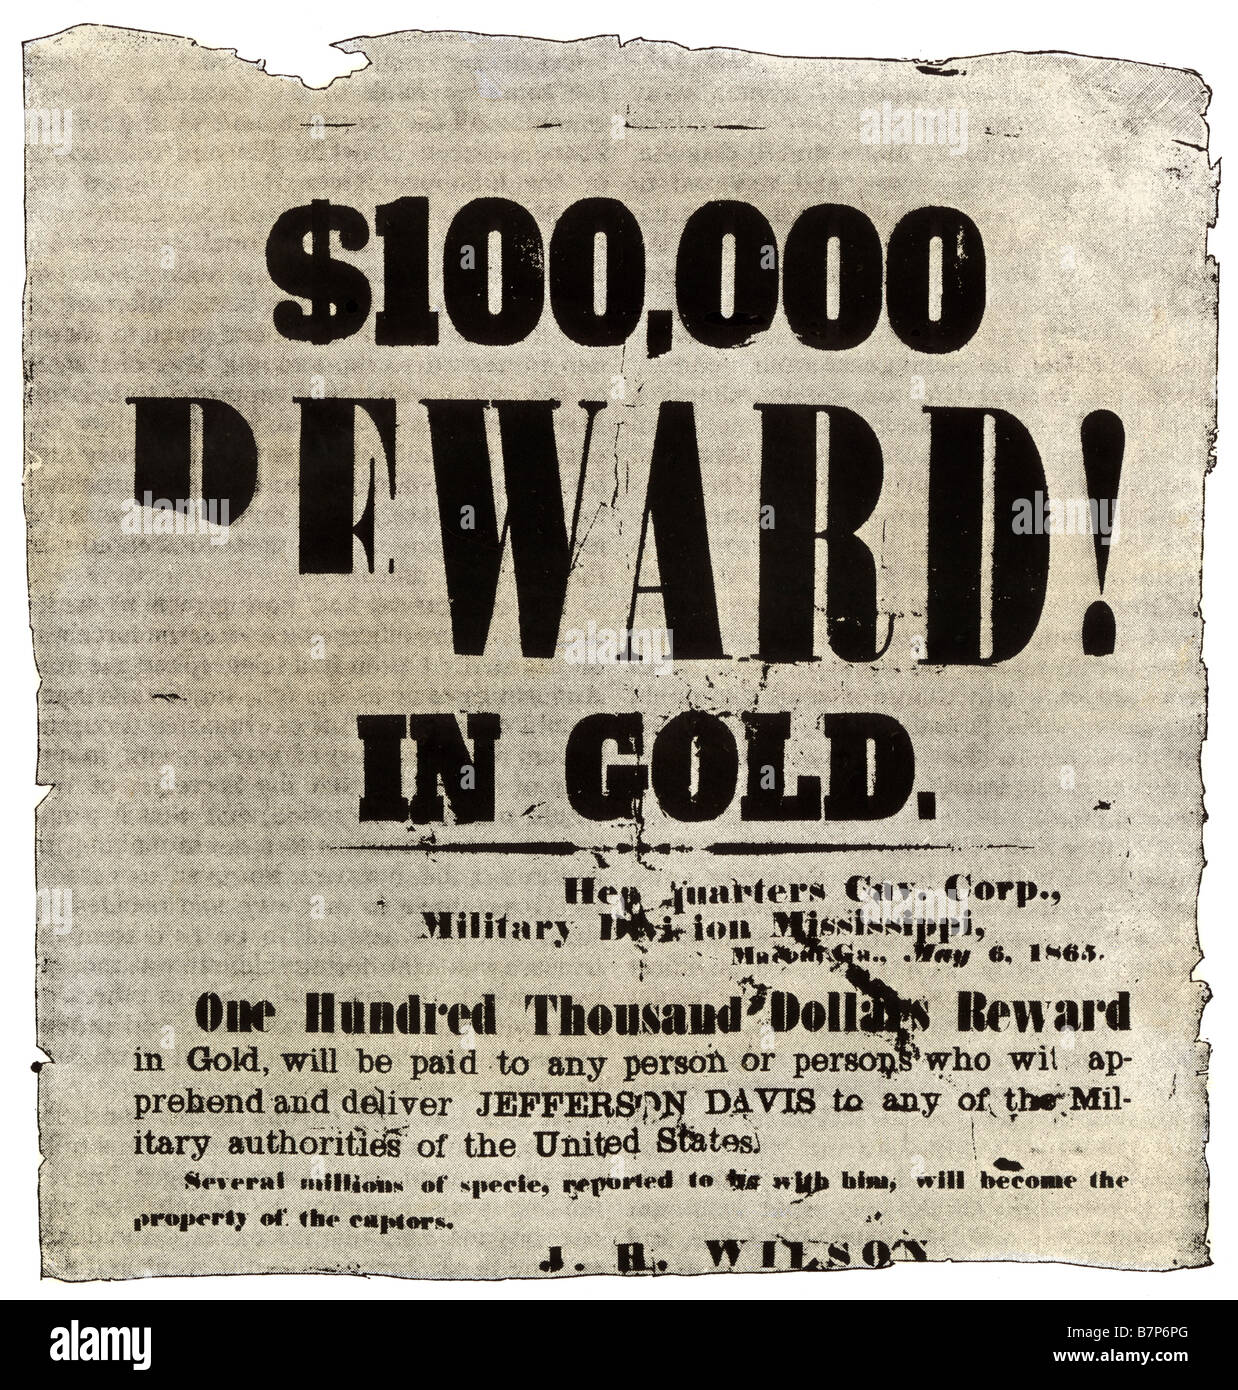 L'affiche de récompense offrant 100 000 $ en or pour la capture de Jefferson Davis en mai 1865. Avec un Photo Stock